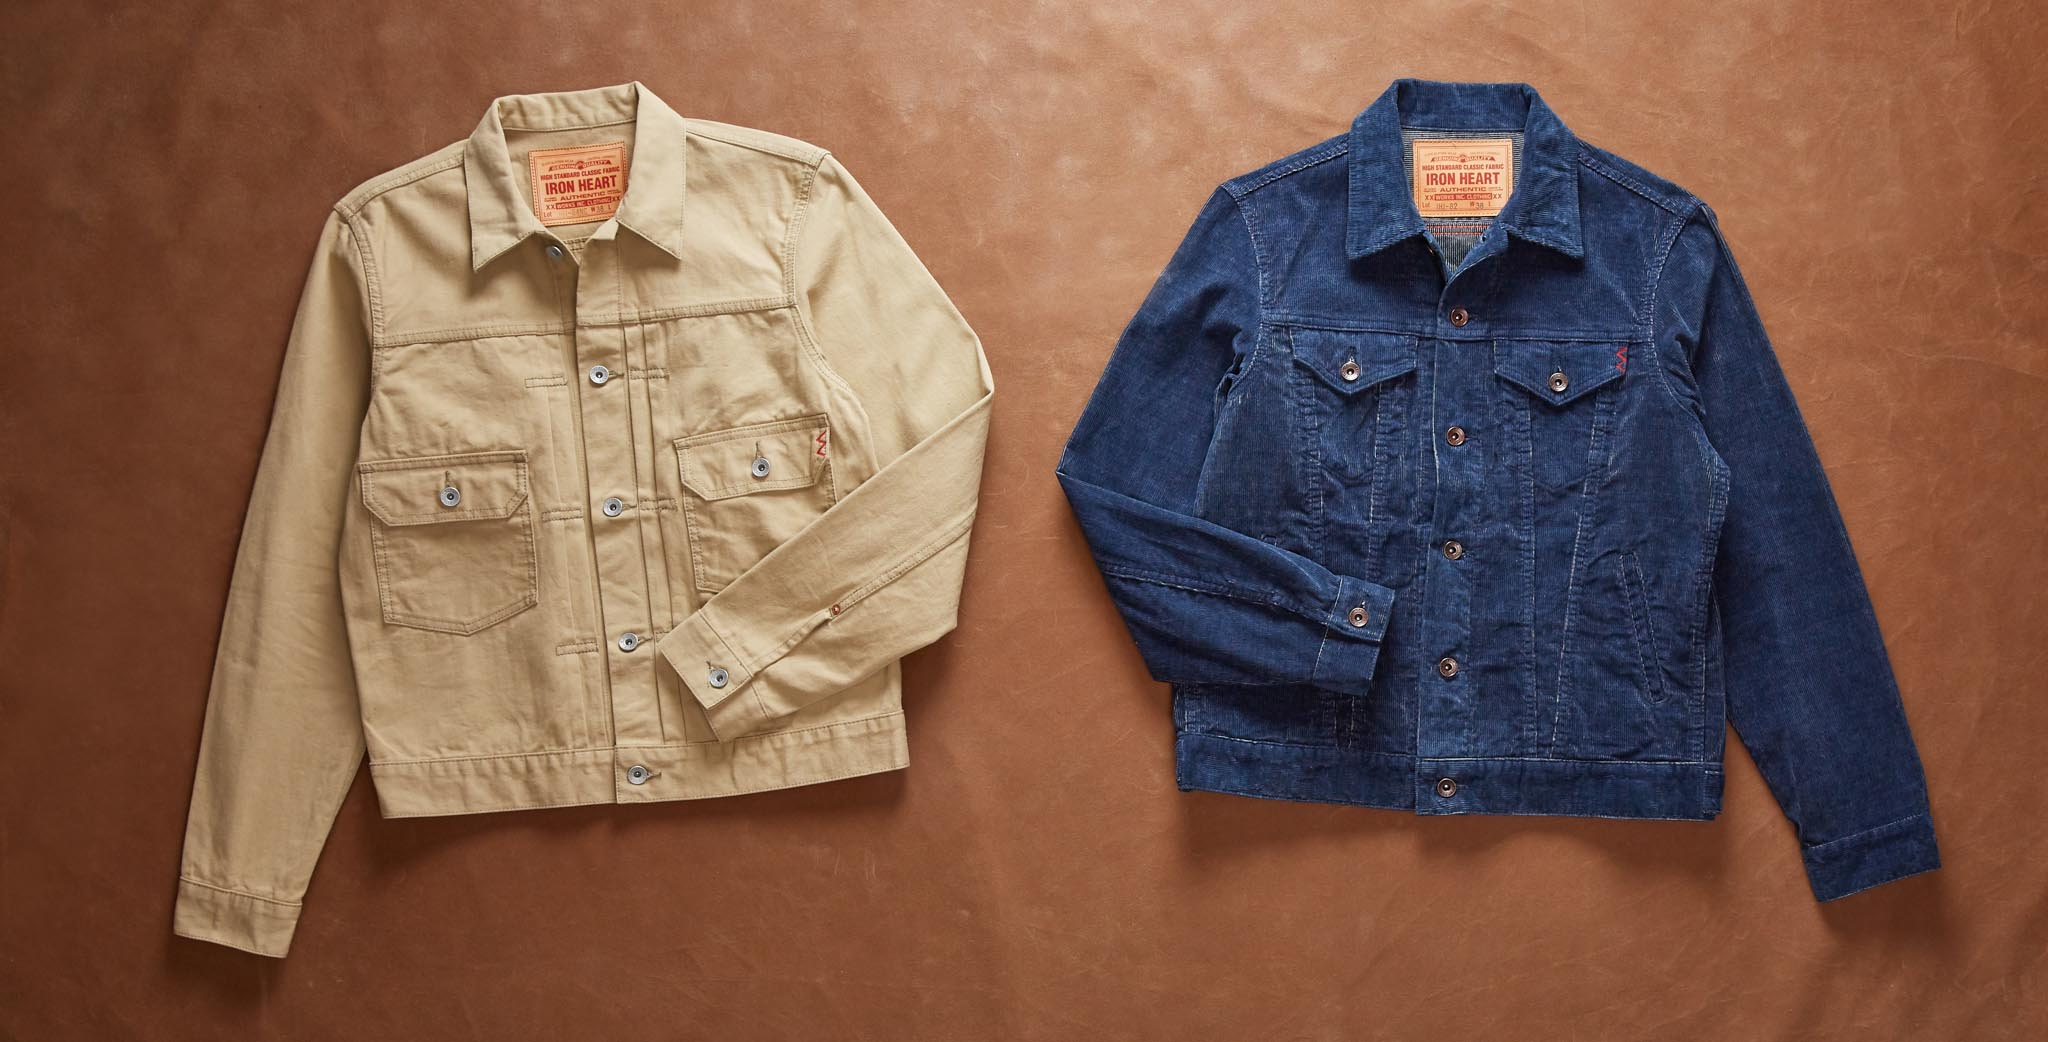 Division Road Editorial Bulletin Signature Style Staples Iron Heart